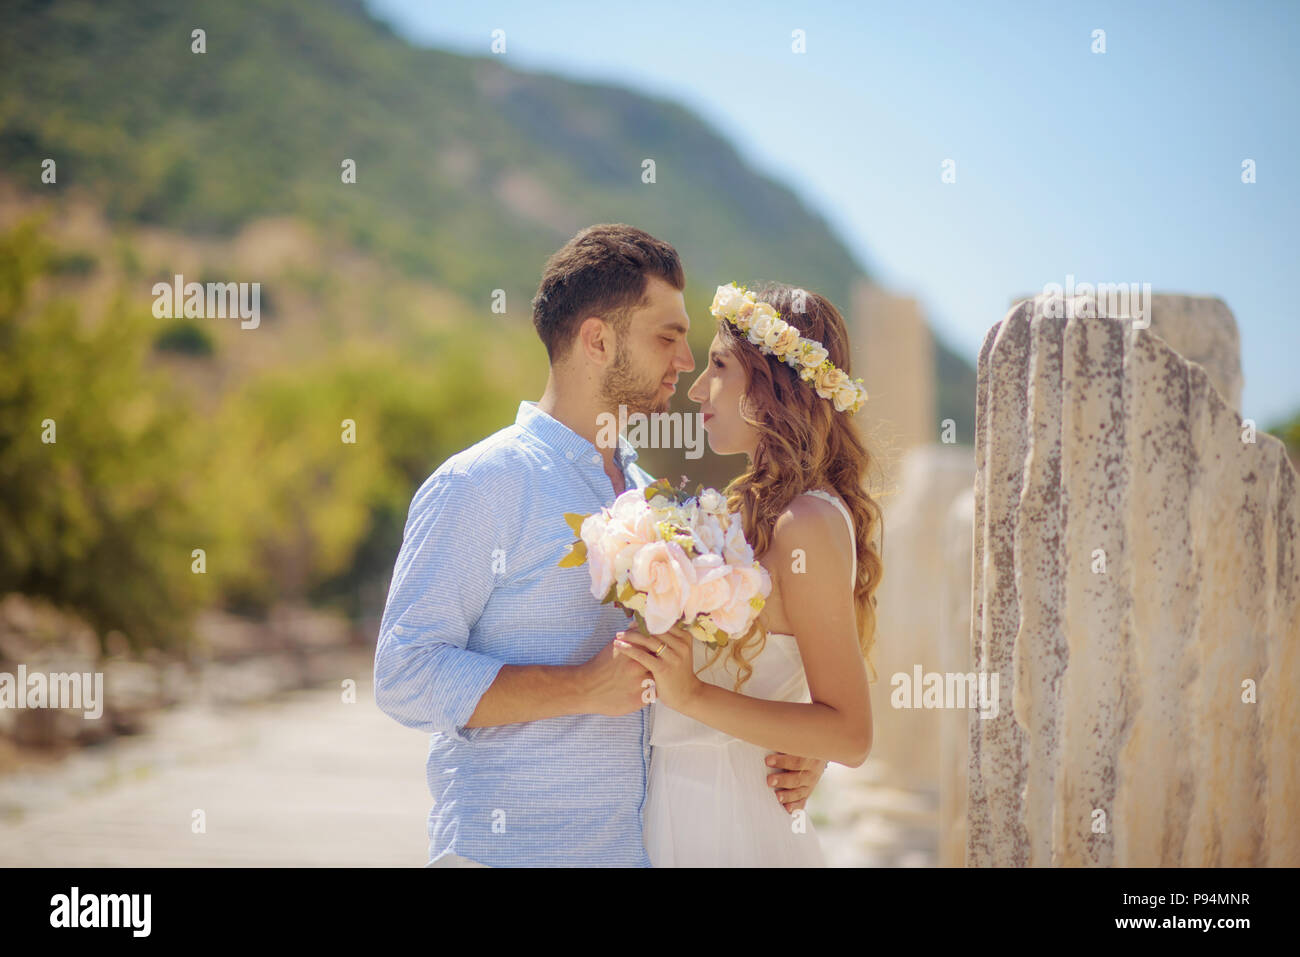 Wedding bride and groom, wedding in ancient city Ephesus among the ancient ruins, bridegroom love marriage marrying couple - Stock Image